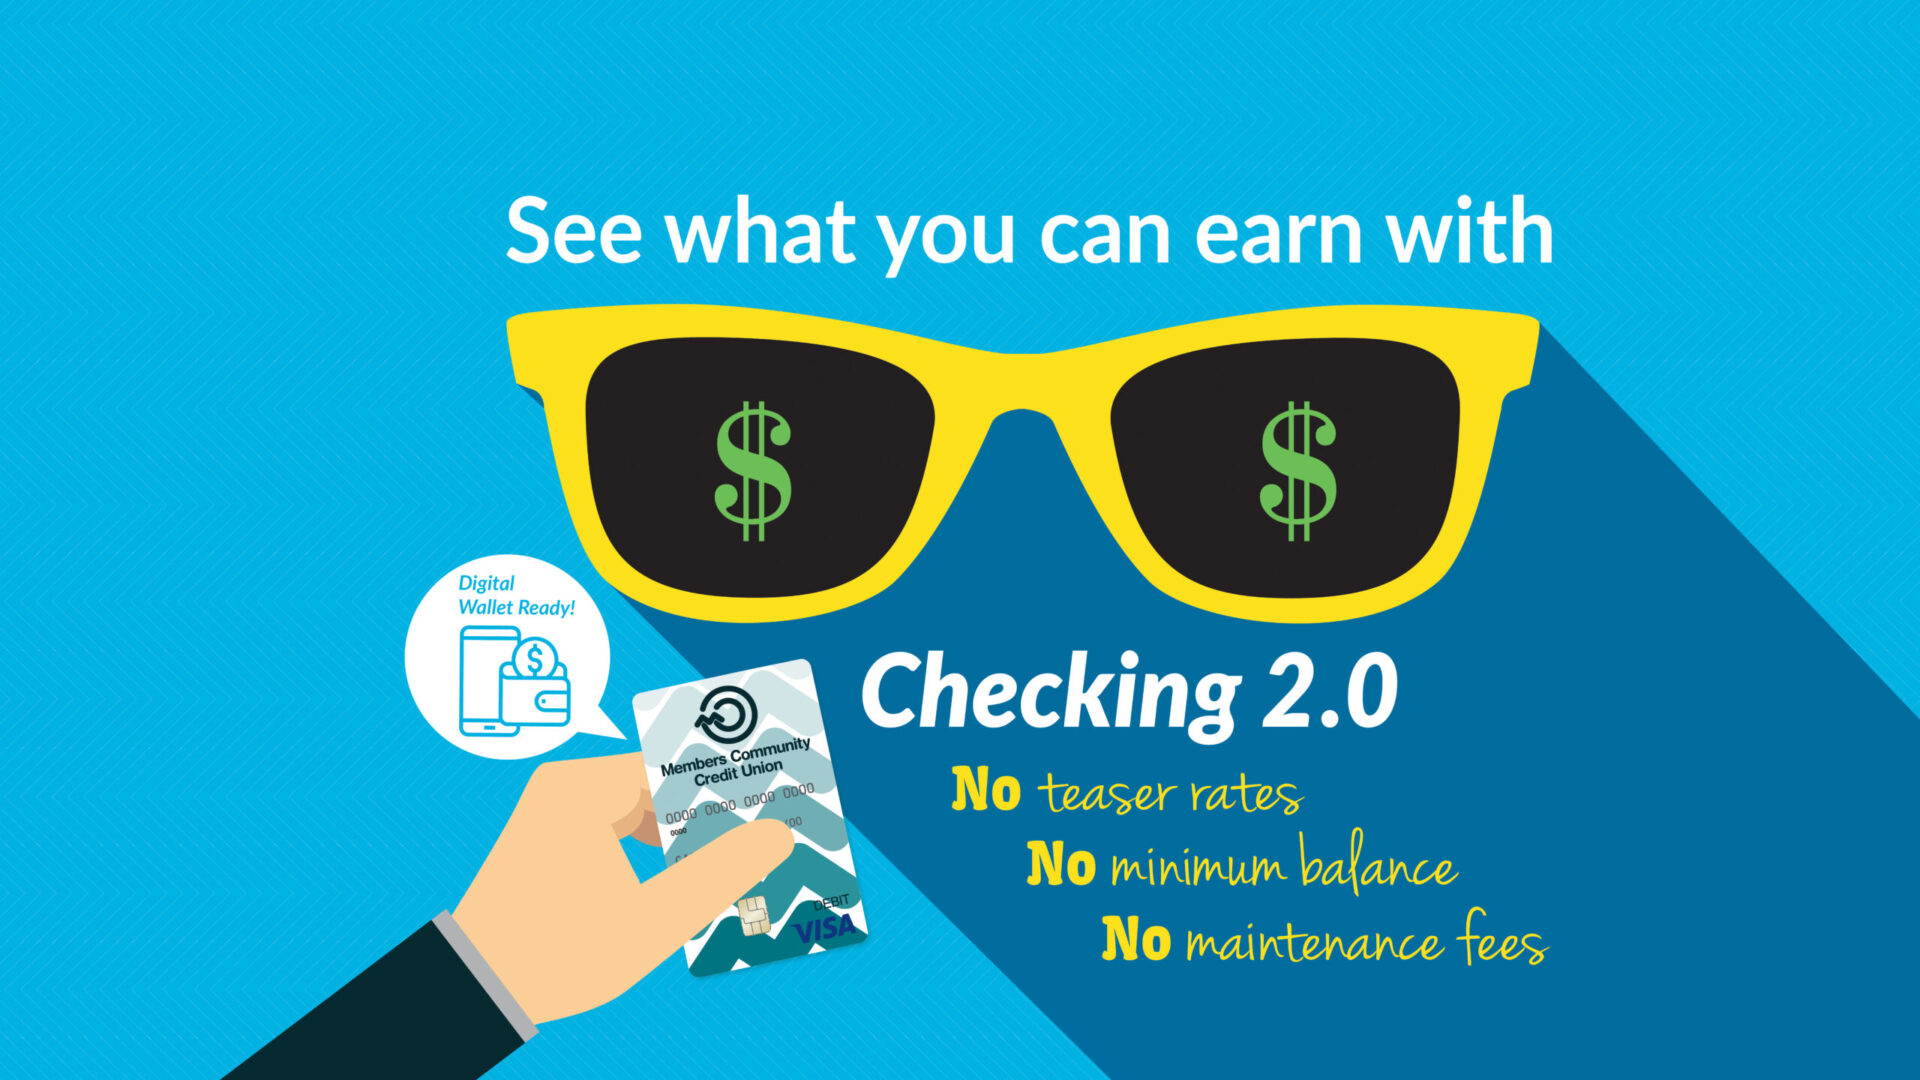 Blue background with yellow sunglasses with green dollar sign lens. See what you can earn with Checking 2.0.